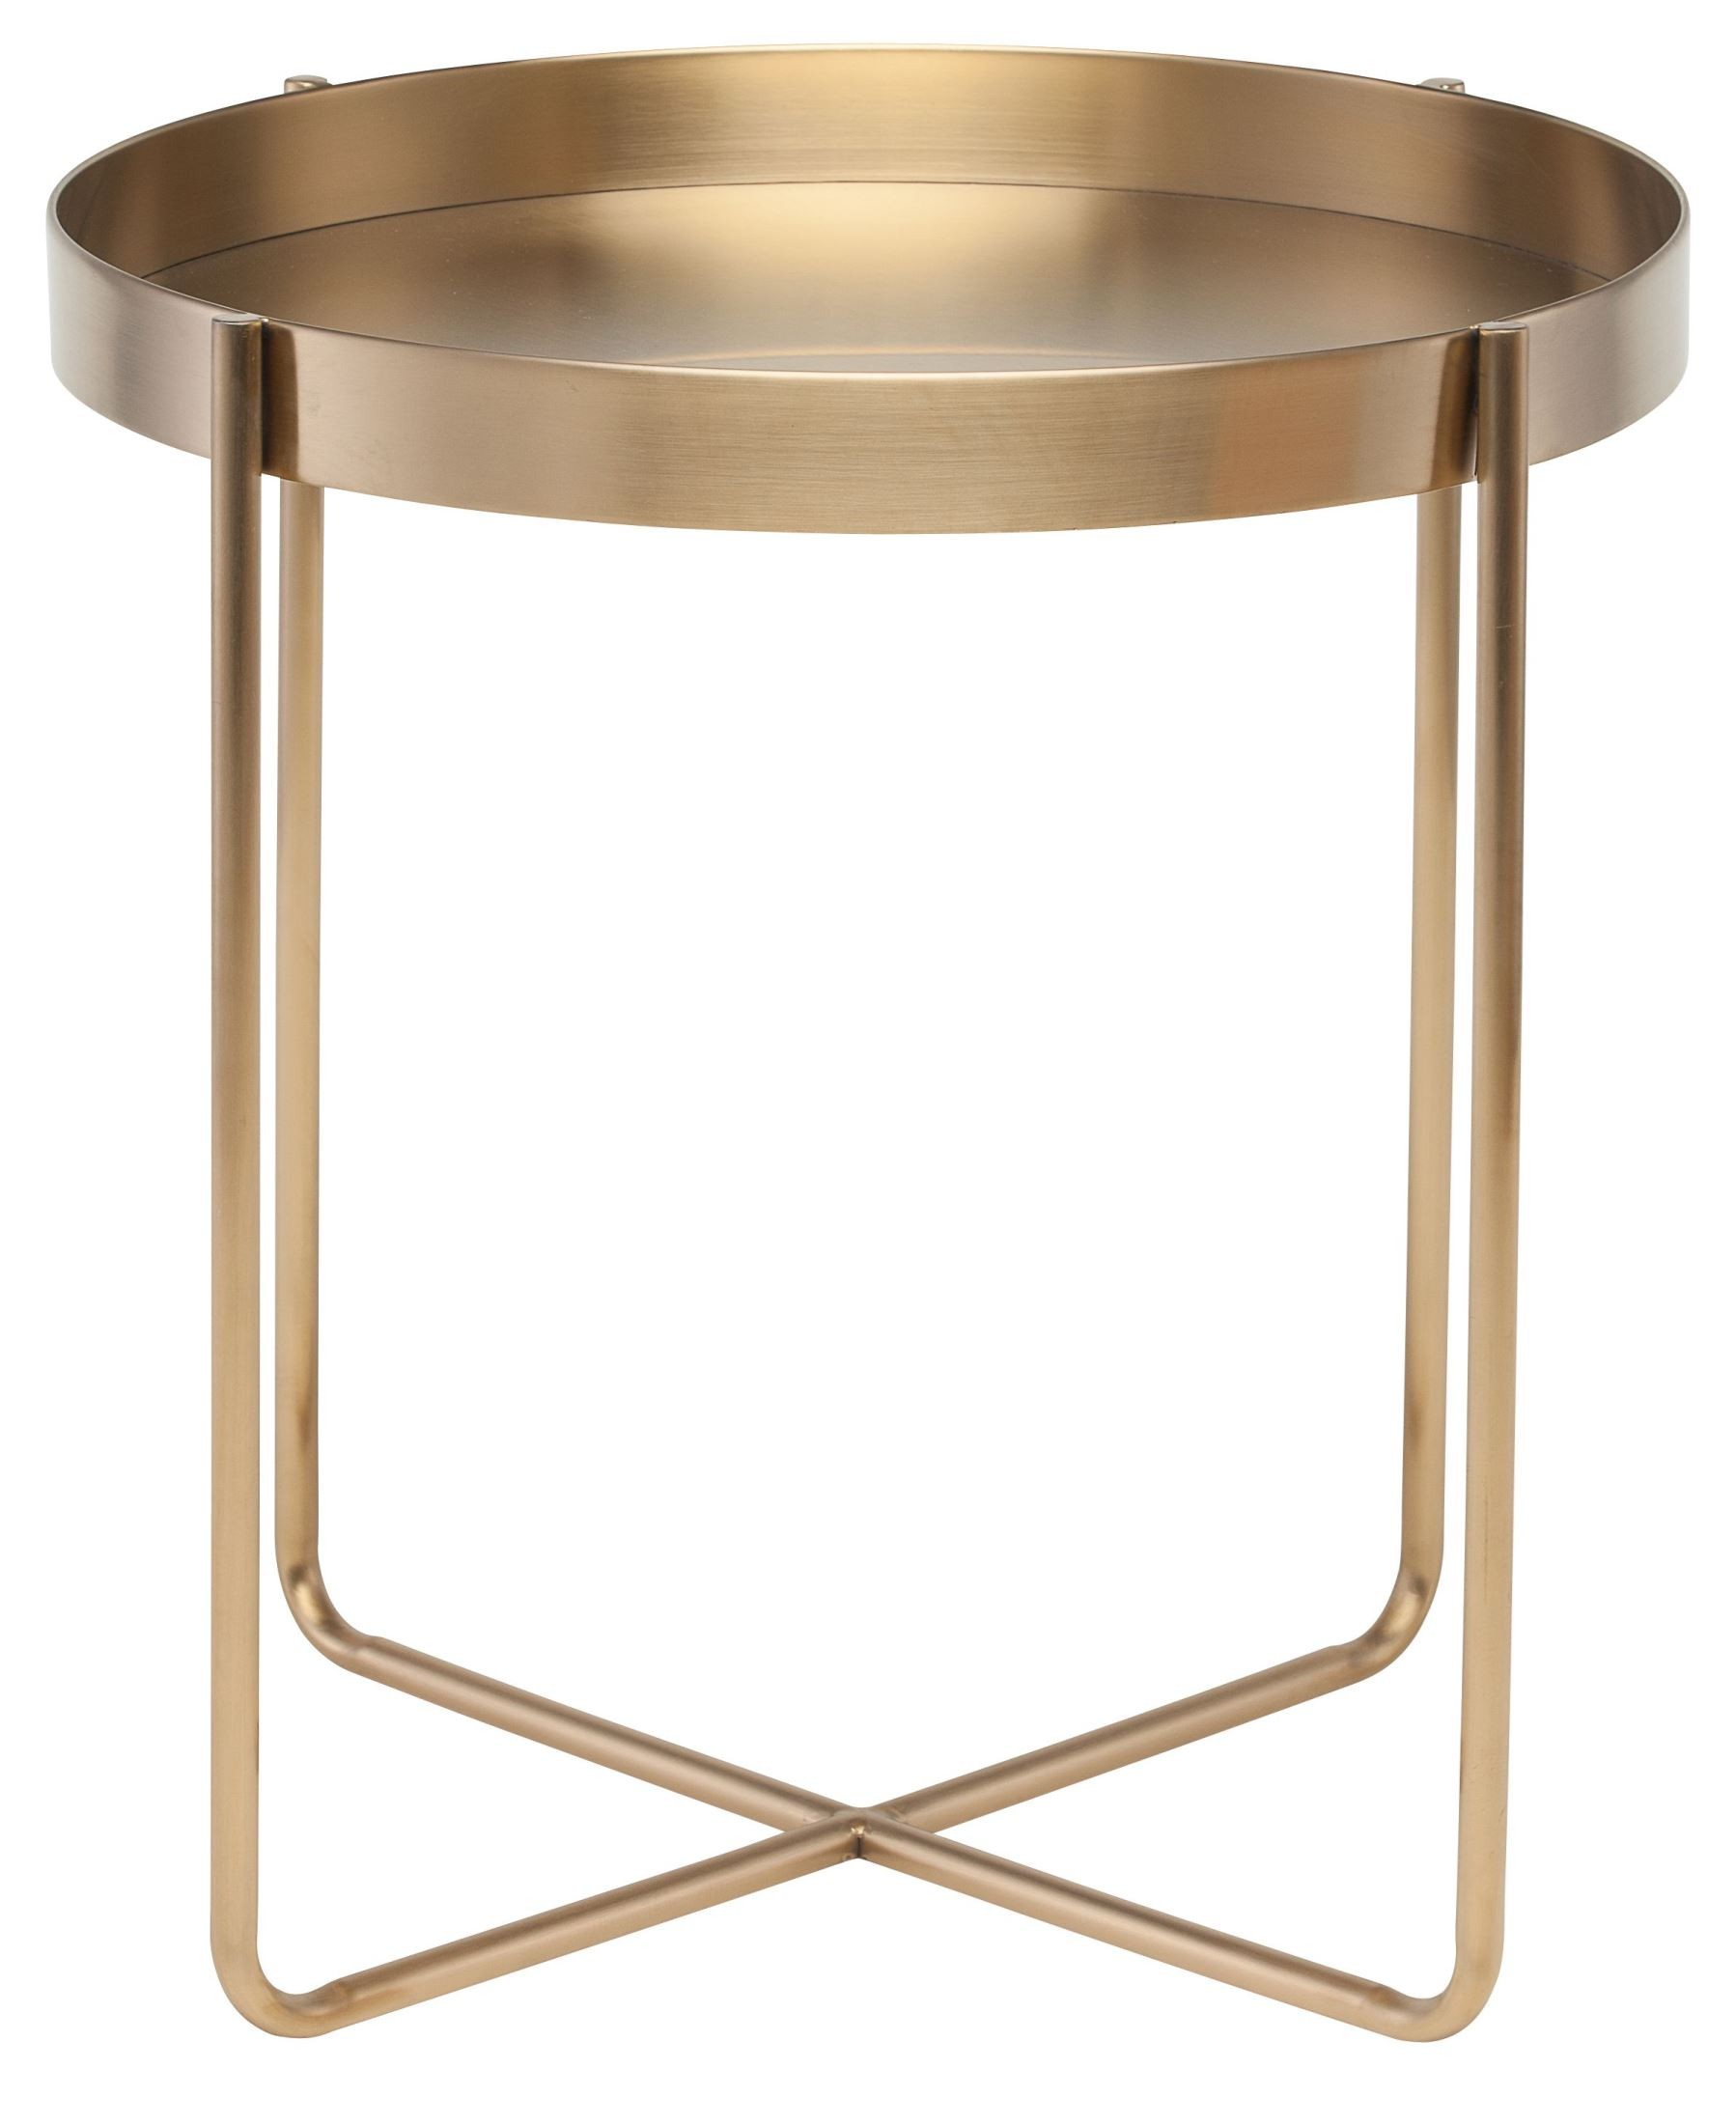 Metal End Tables ~ Gaultier gold metal side table hgde nuevo